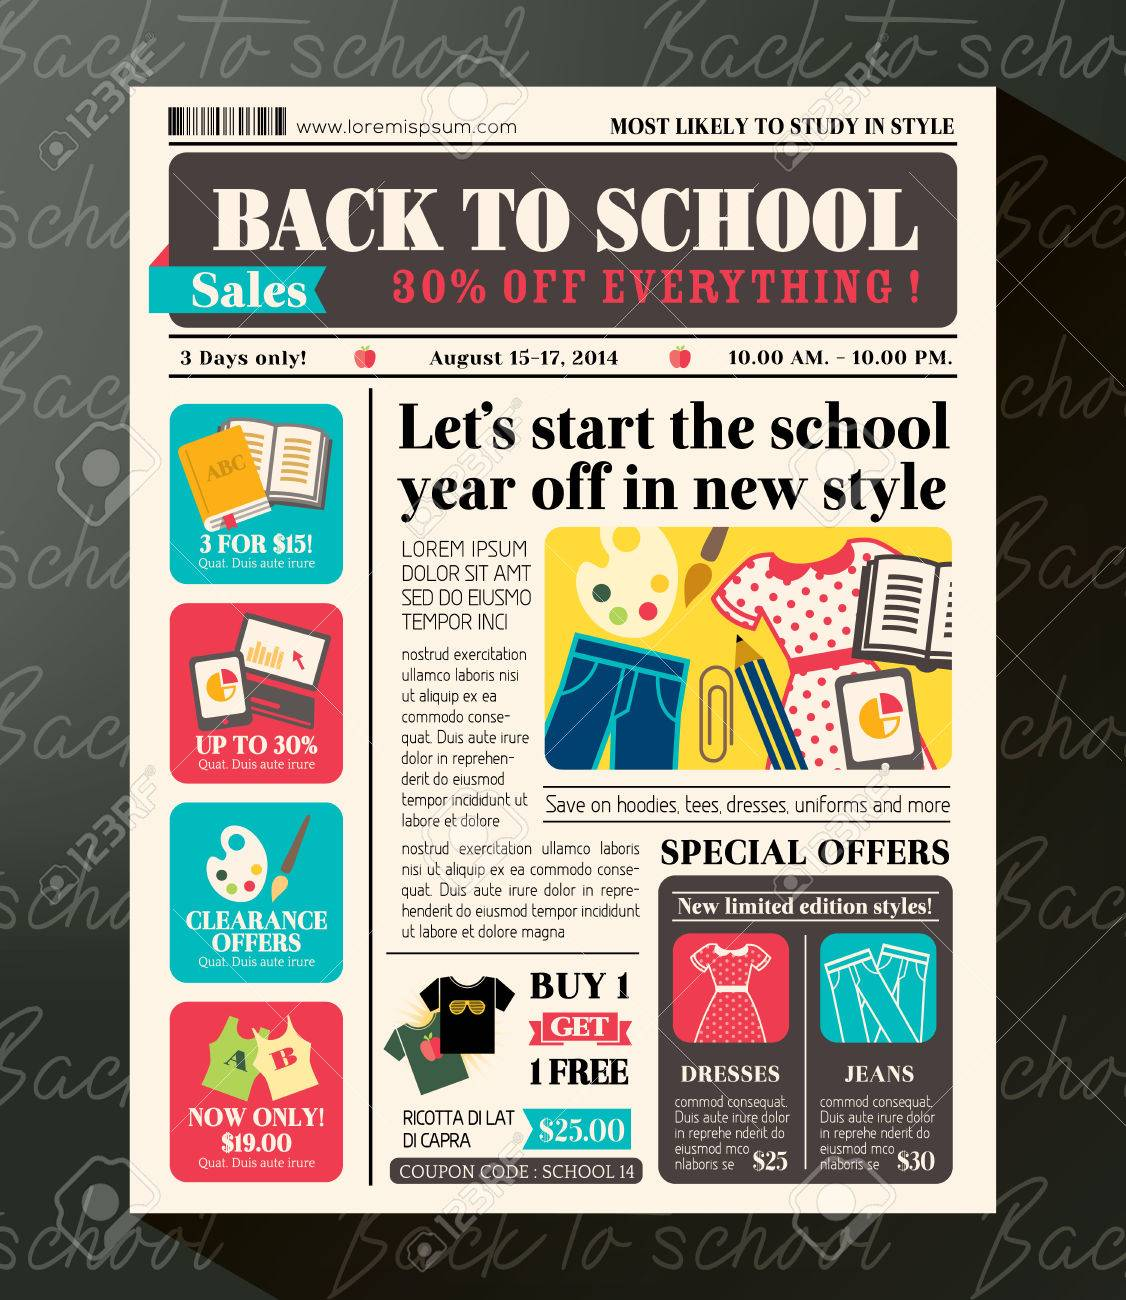 Back To School Sales Promotional Design Template In Newspaper